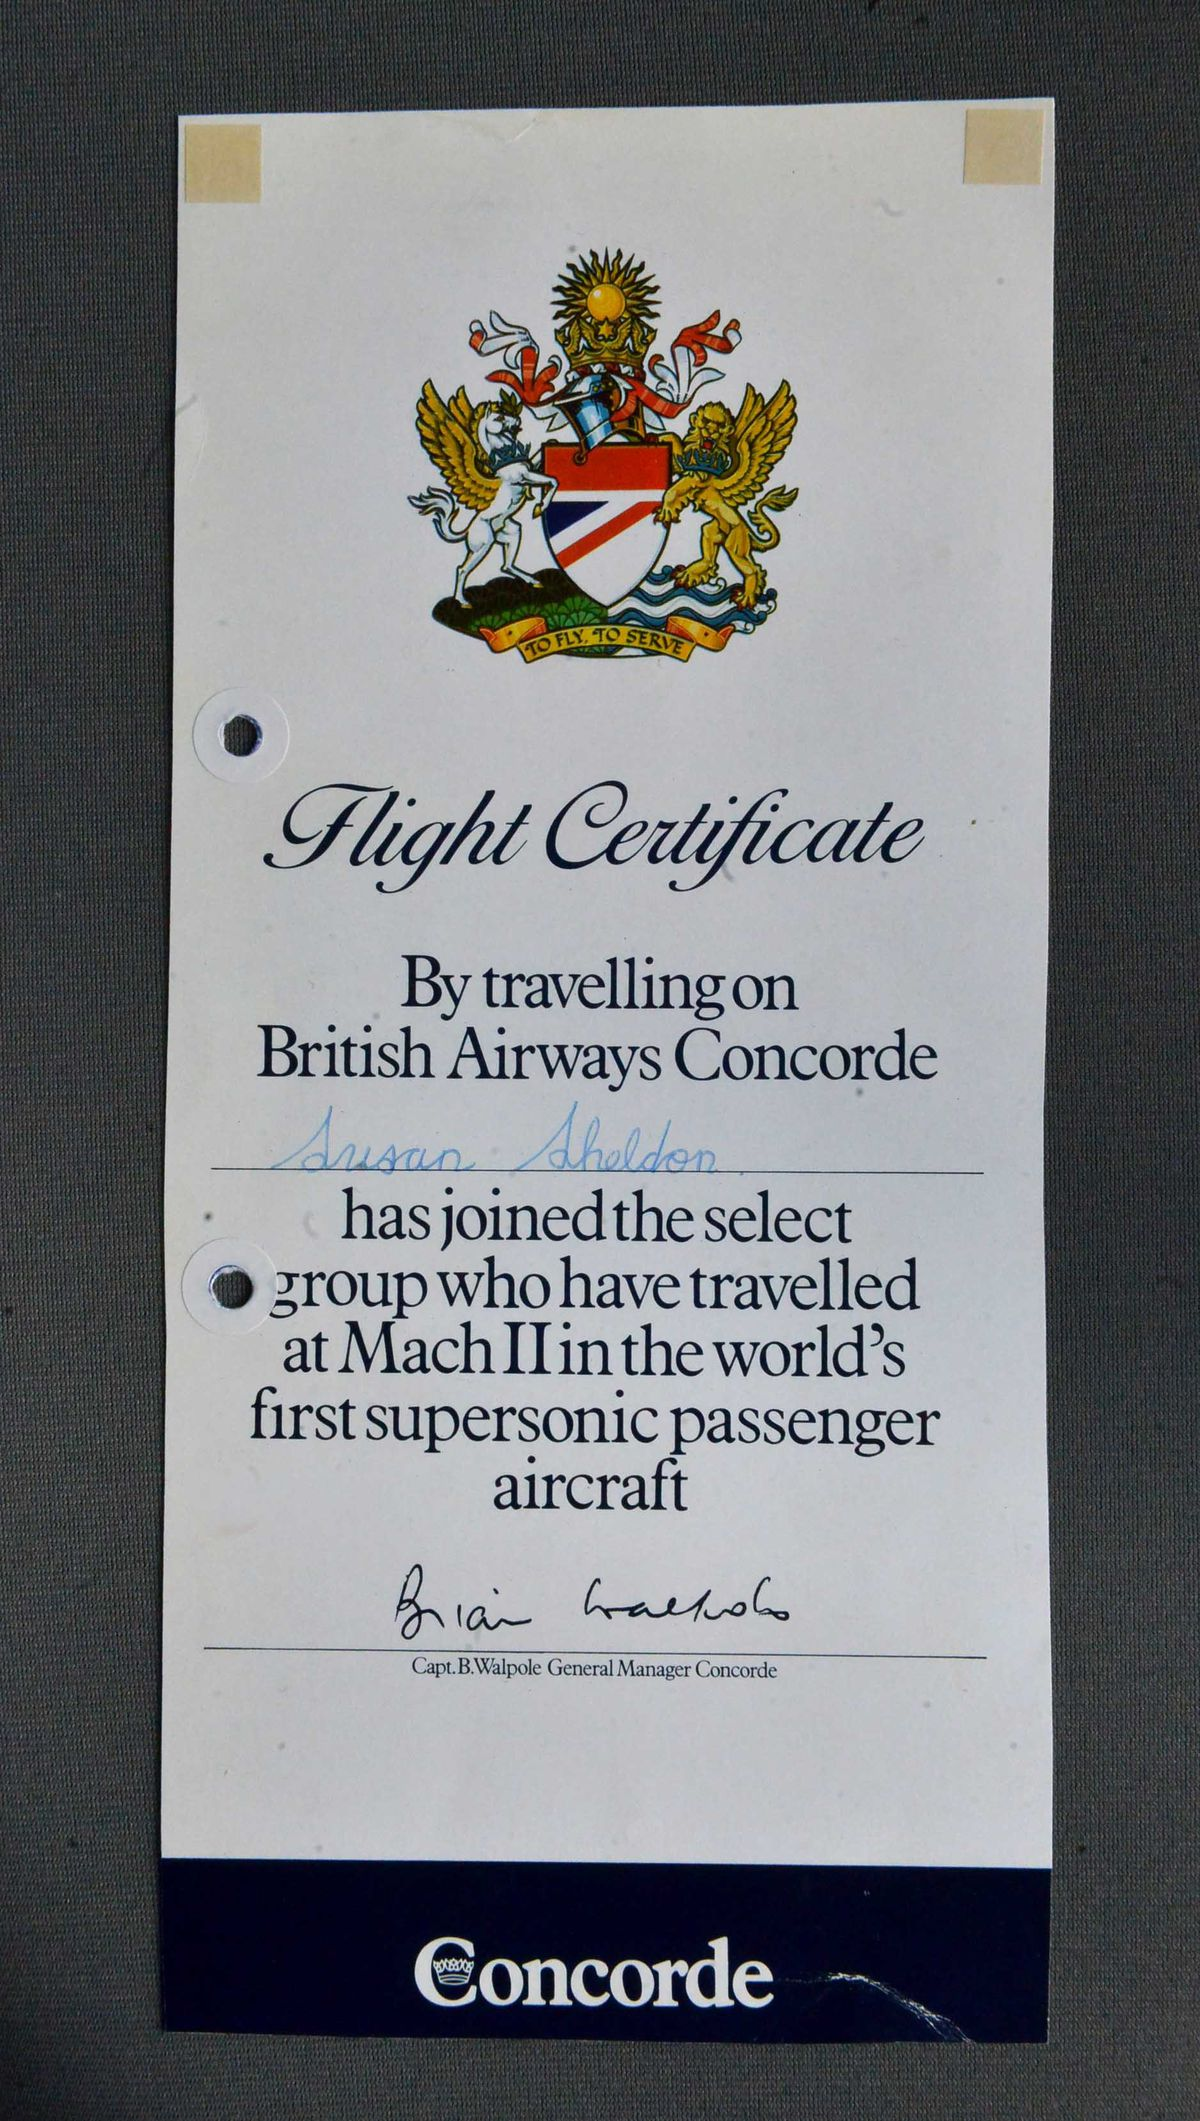 Susan Adams, then Sheldon, received a certificate for flying on Concorde in 1983